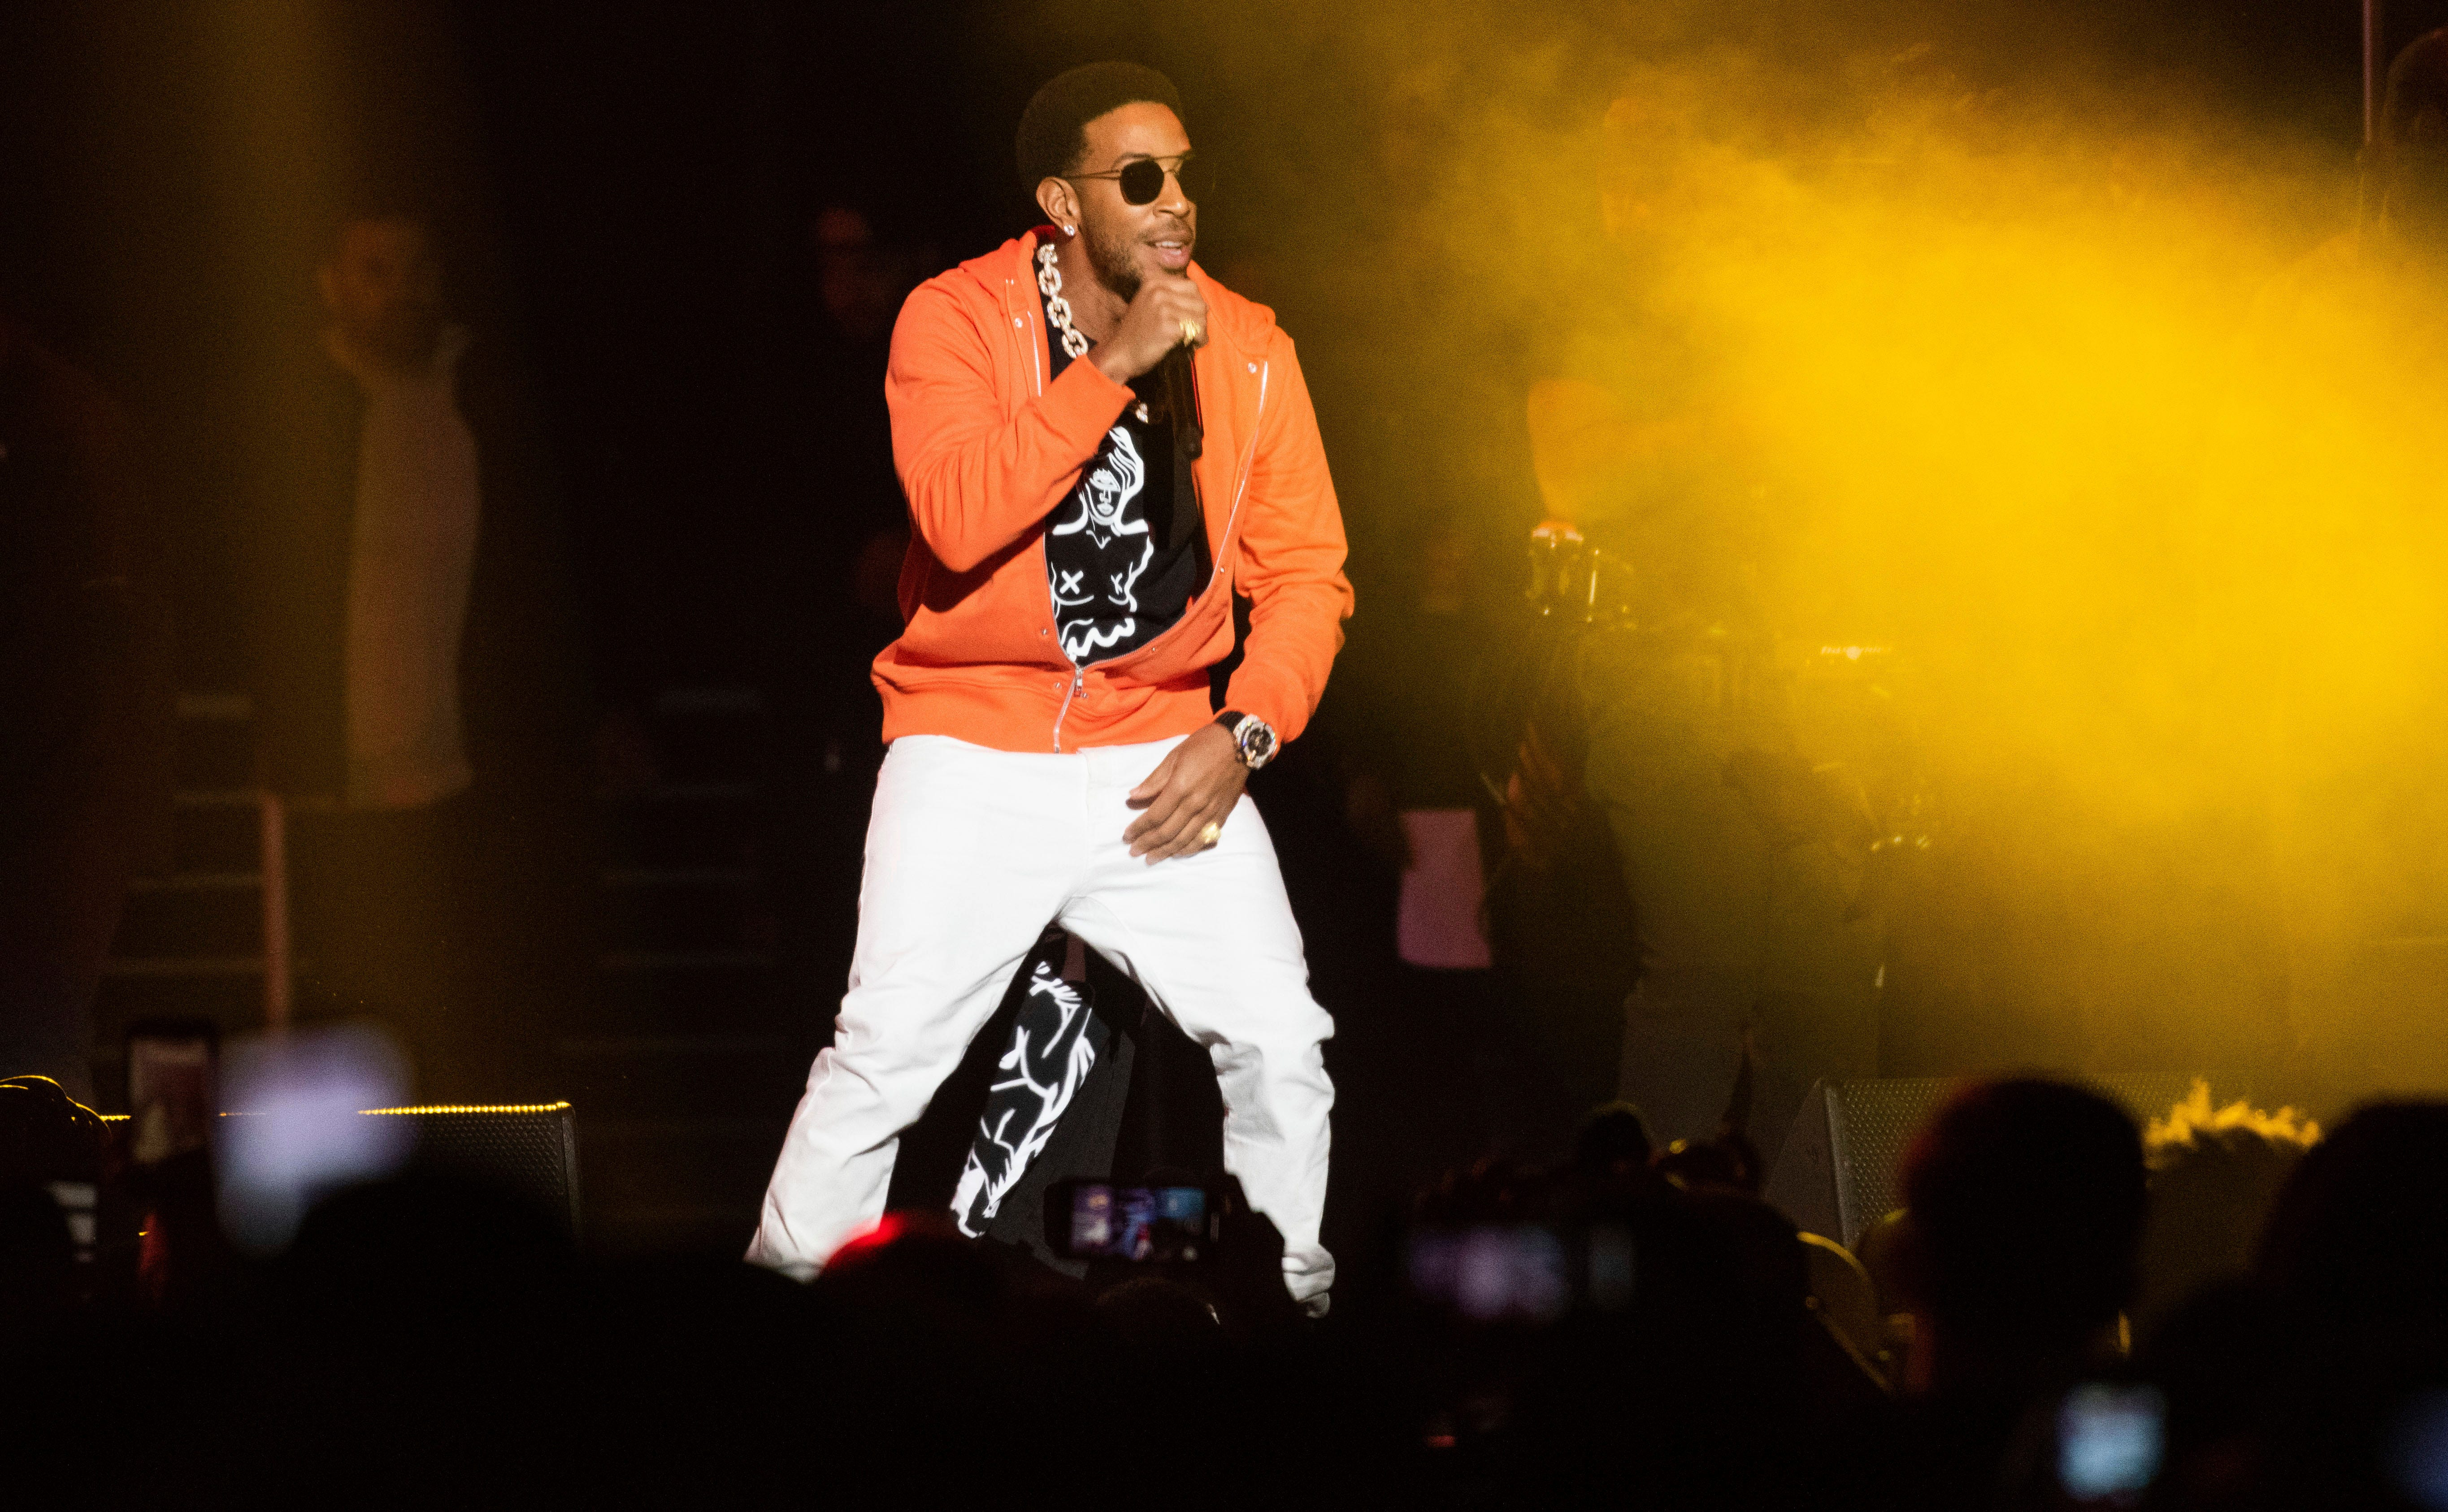 Ludacris performs on stage at the Bud Light Super Bowl Music Fest at the State Farm Arena on Thursday, Jan. 31, 2019, in Atlanta.